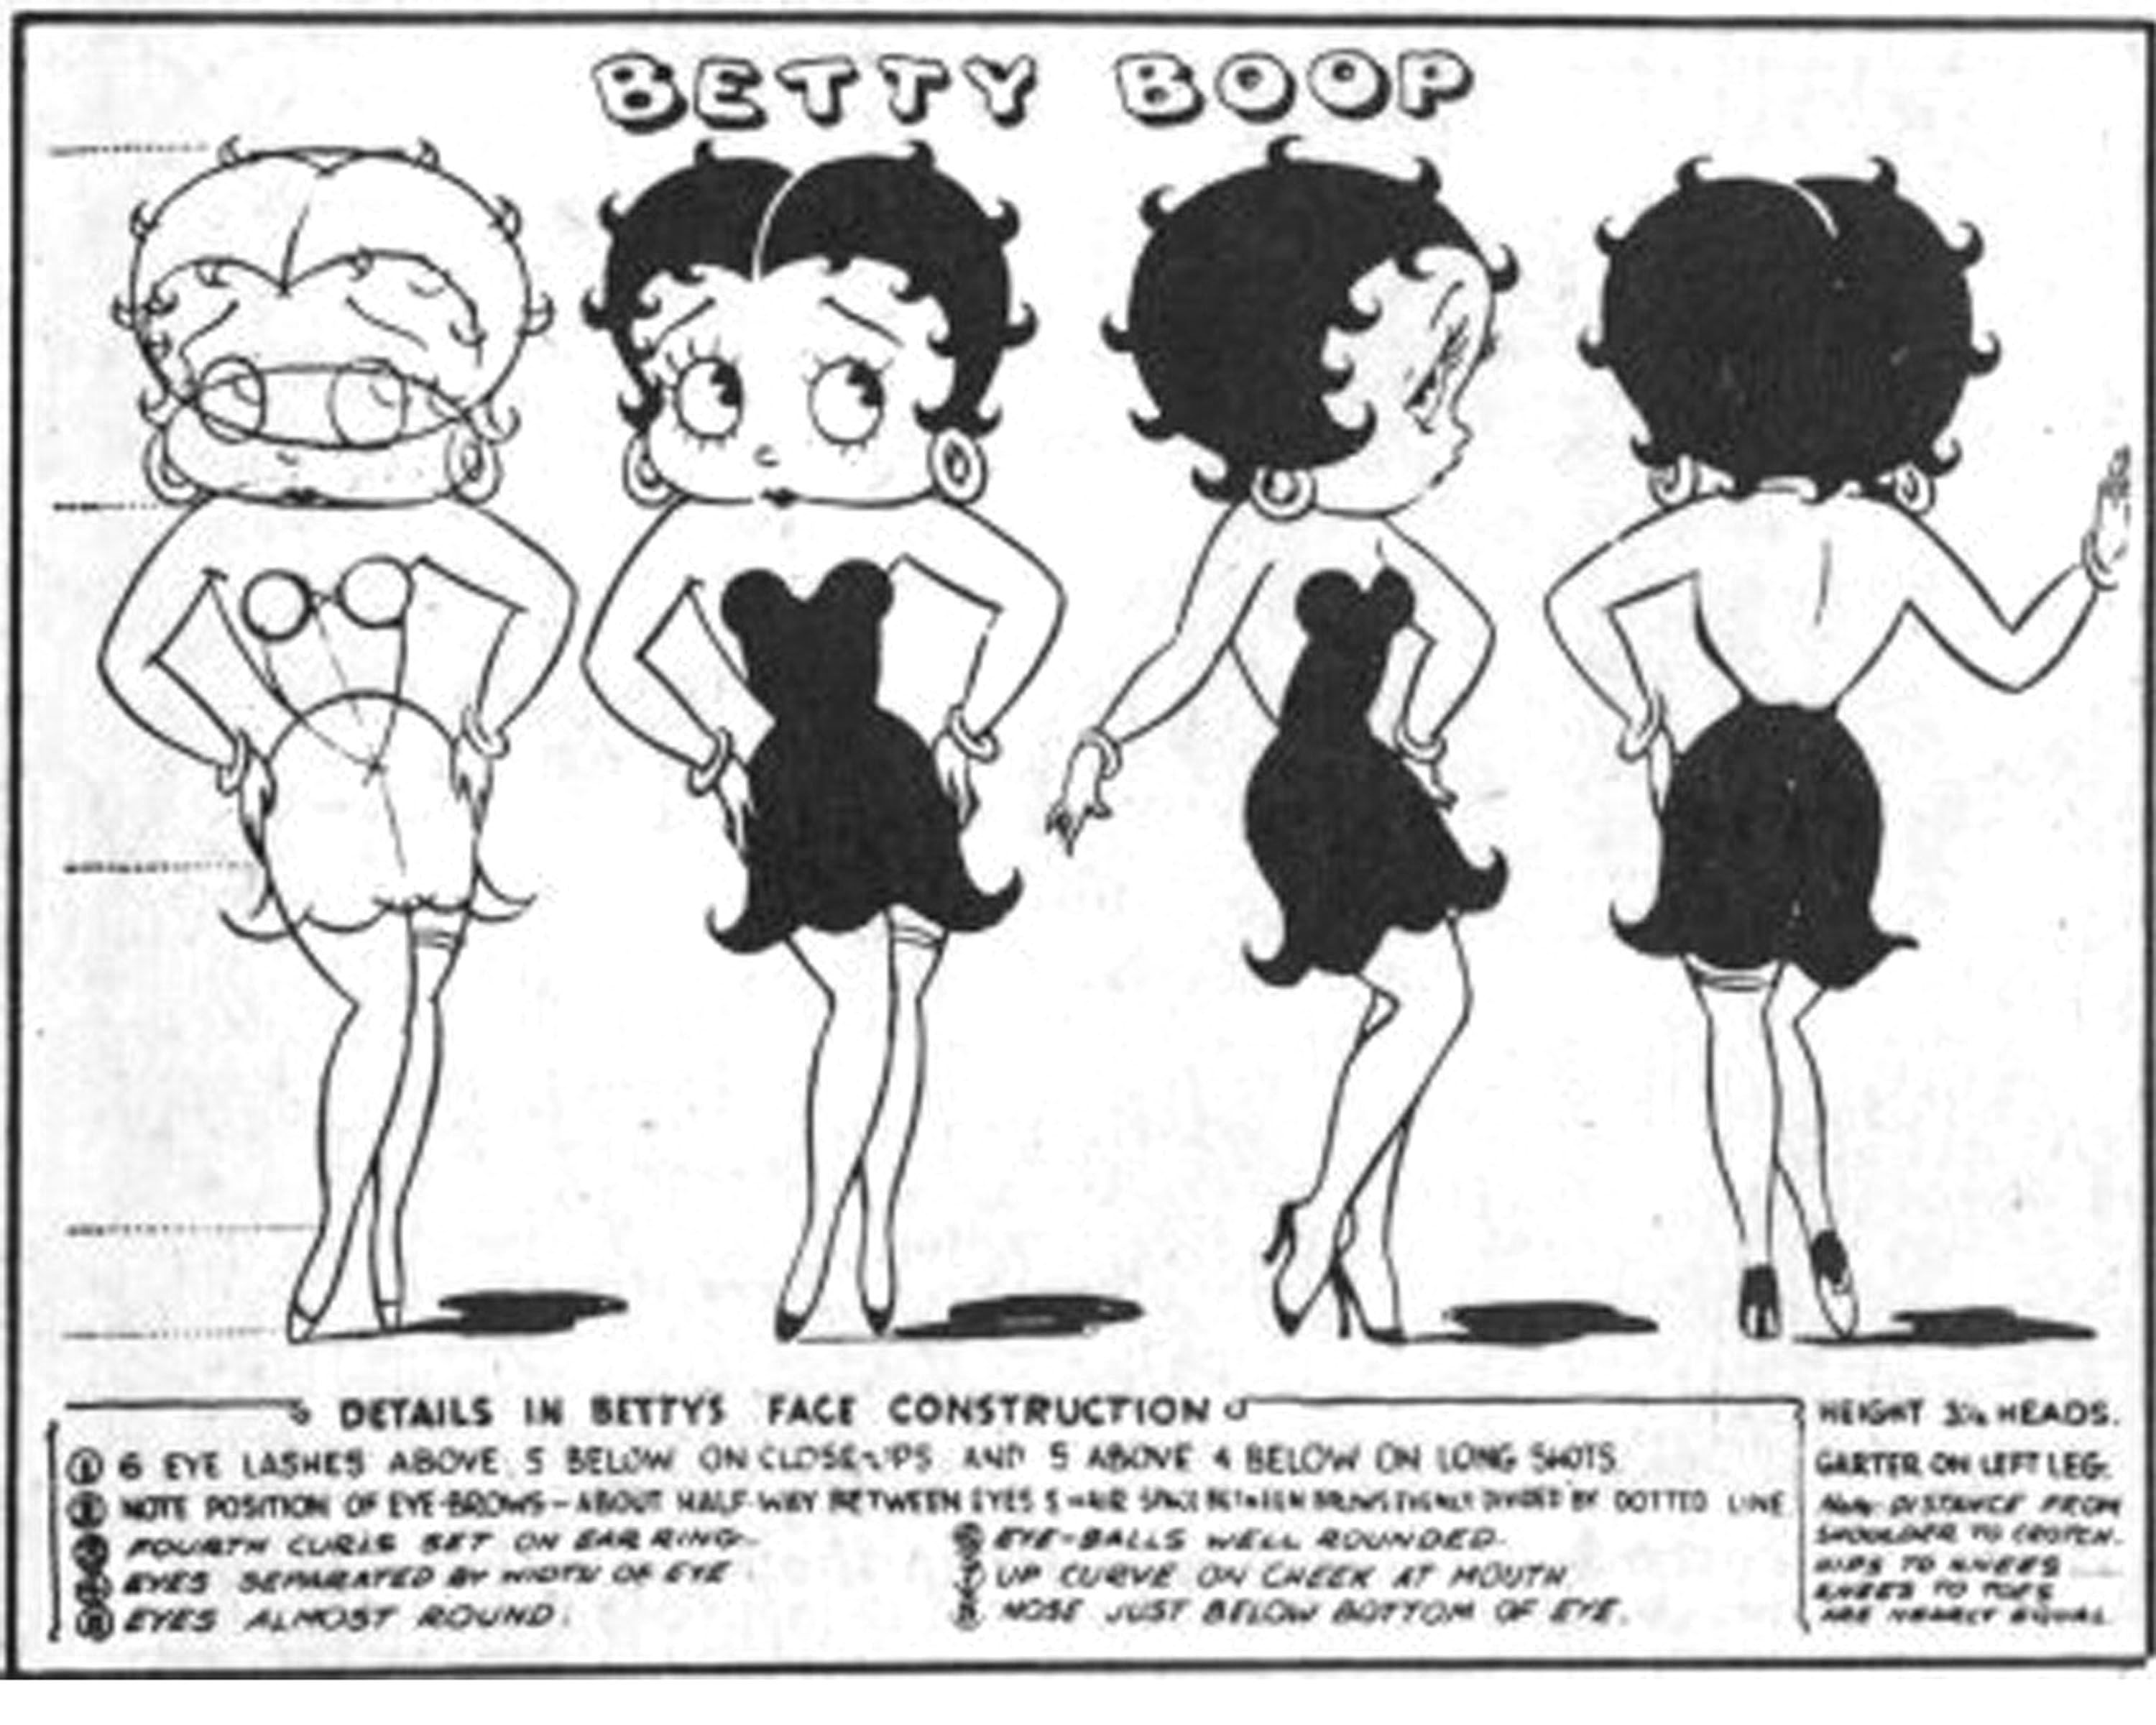 Betty boop model sheetproduction art concept art production betty boop model sheetproduction art amipublicfo Gallery